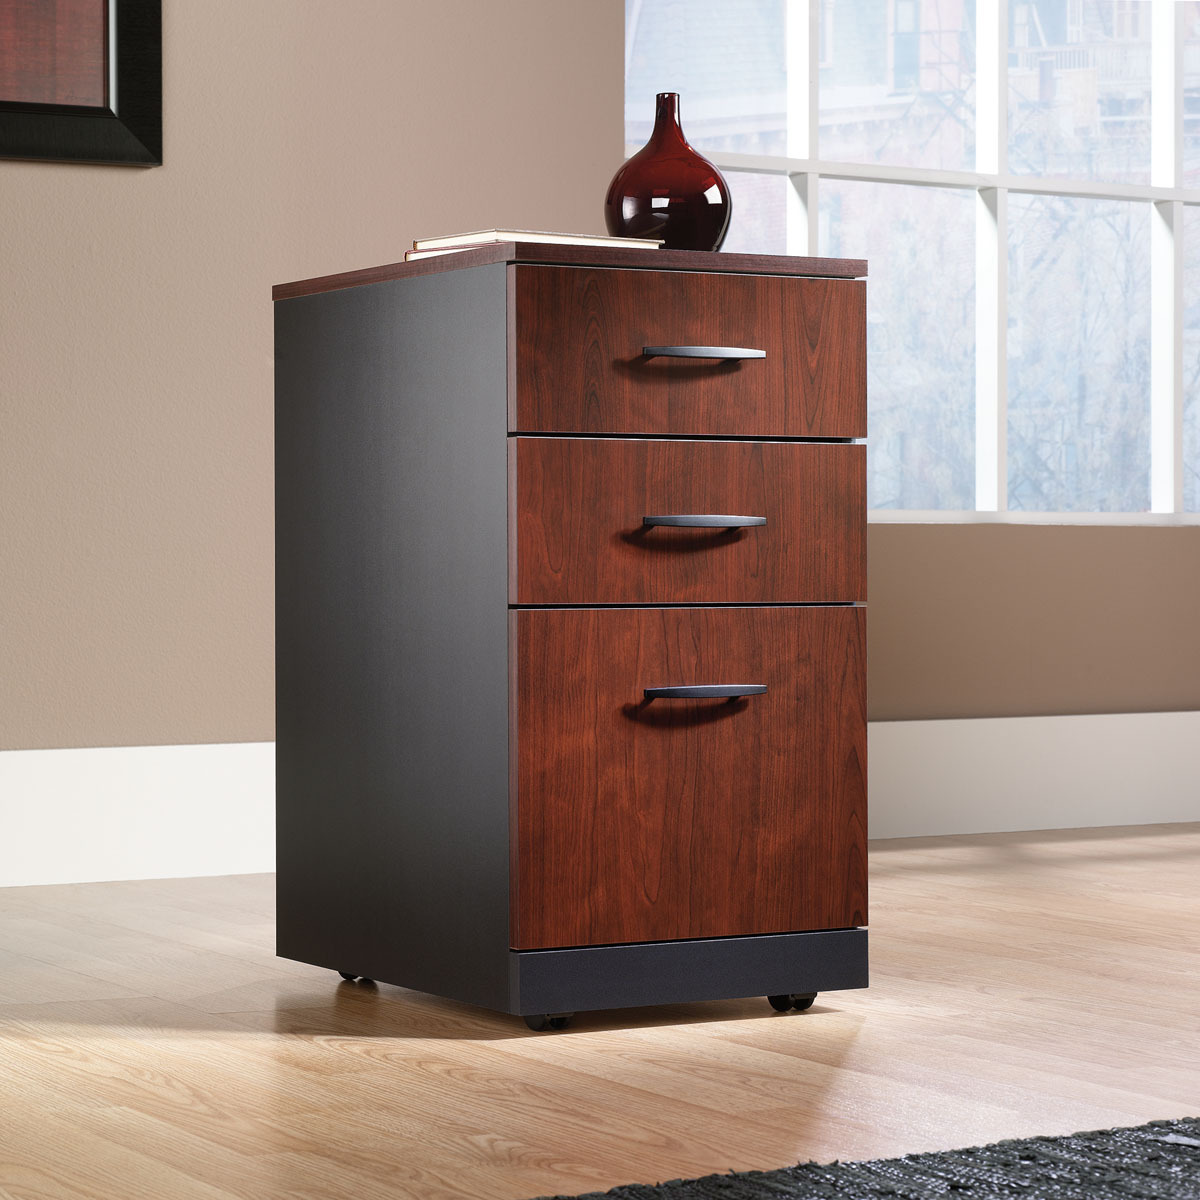 Youu0027re Viewing: Sauder (401443) Via 3 Drawer File Cabinet $134.00